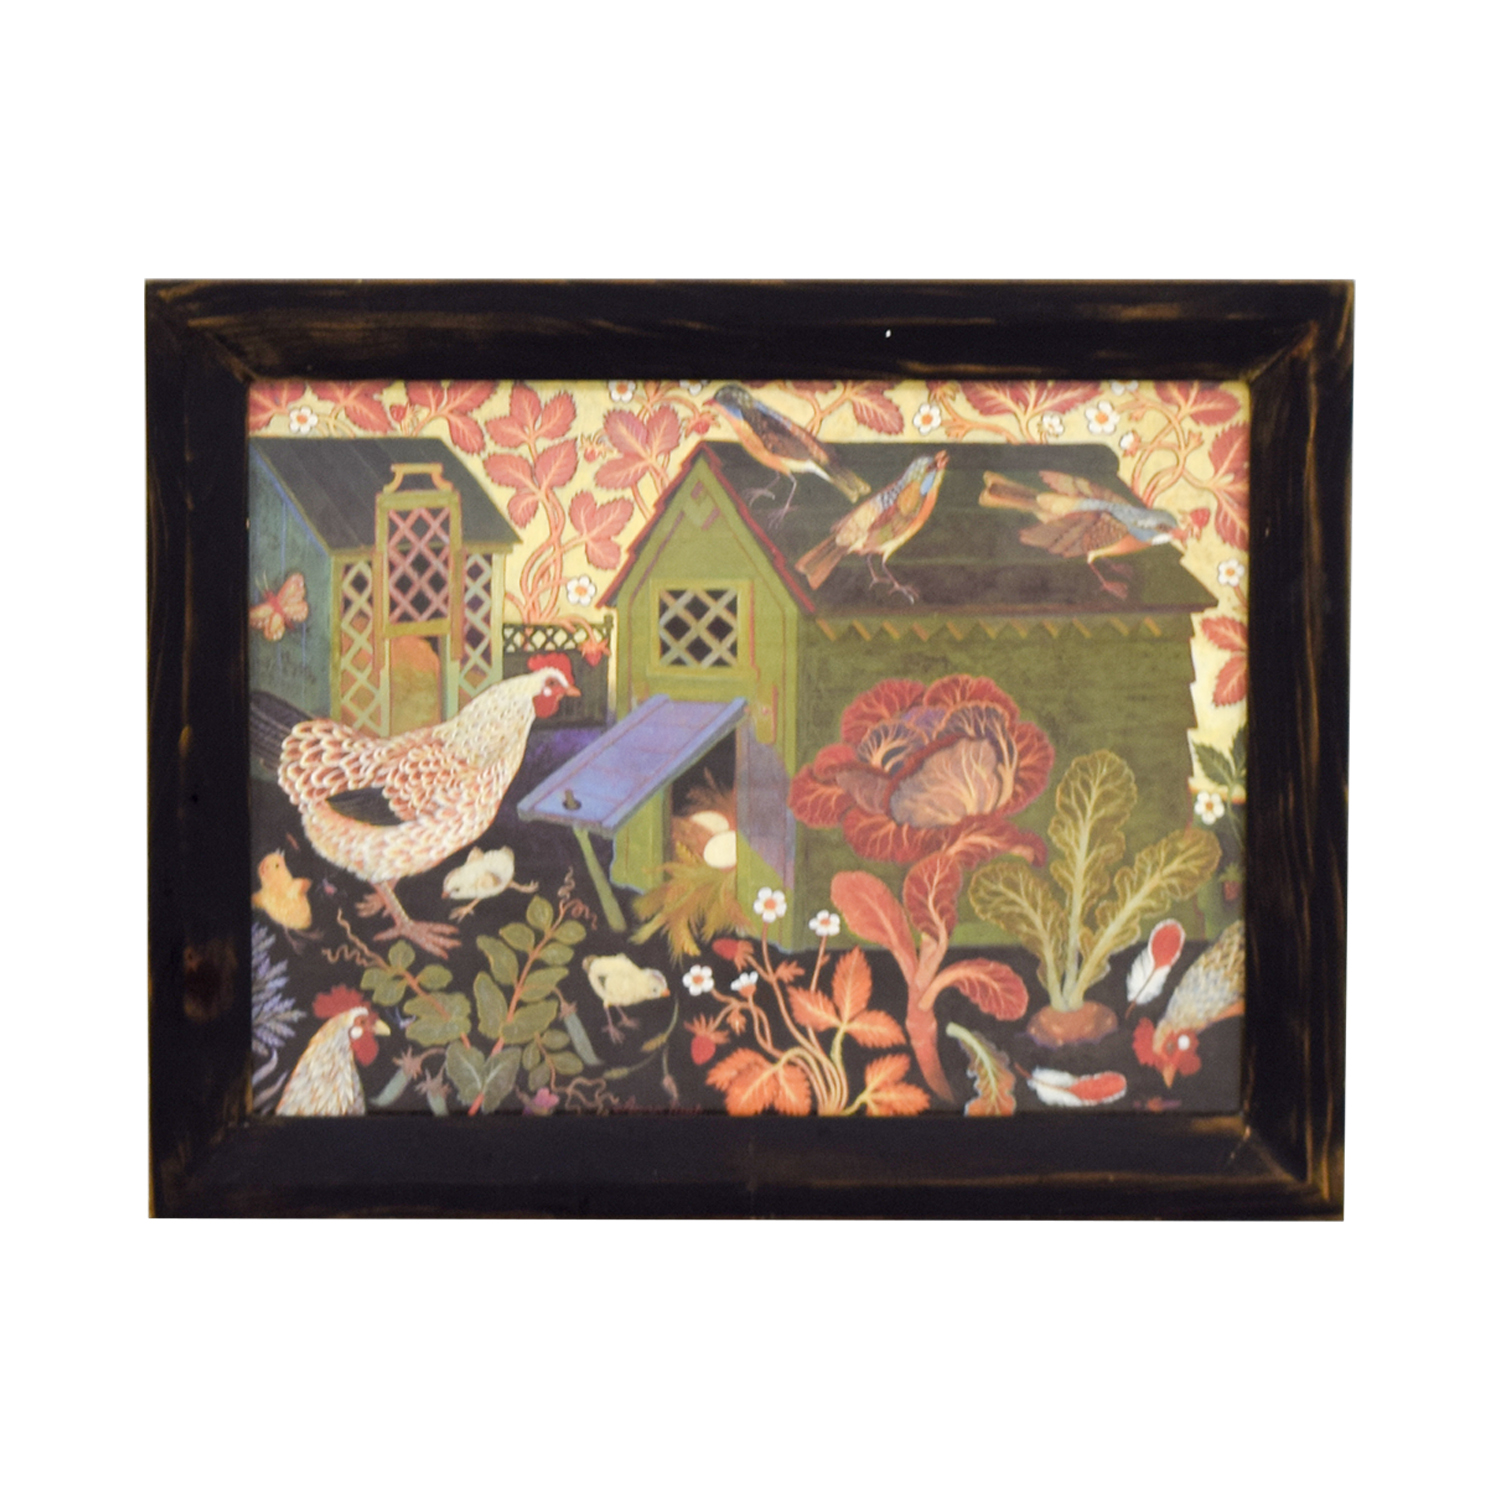 Clapper Hollow Designs Clapper Hollow Designs Chicken Coop Framed Print on sale